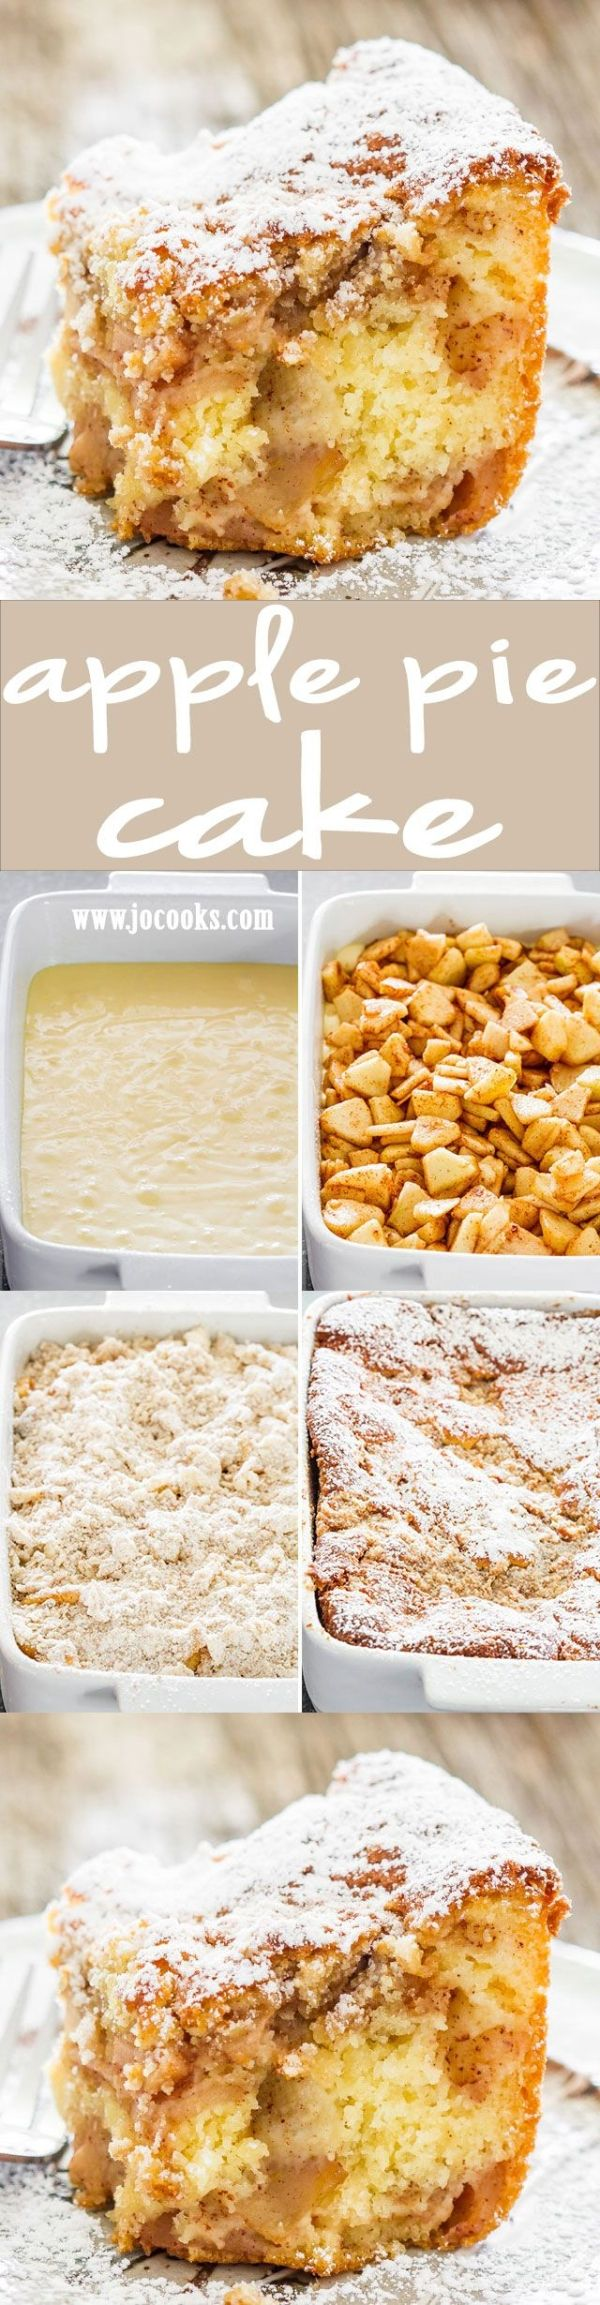 Apple Pie Cake - Is it pie or is it cake? It's both! For those times when you can't decide if you want pie or cake, this apple pie cake will satisfy both cravings! by coleen